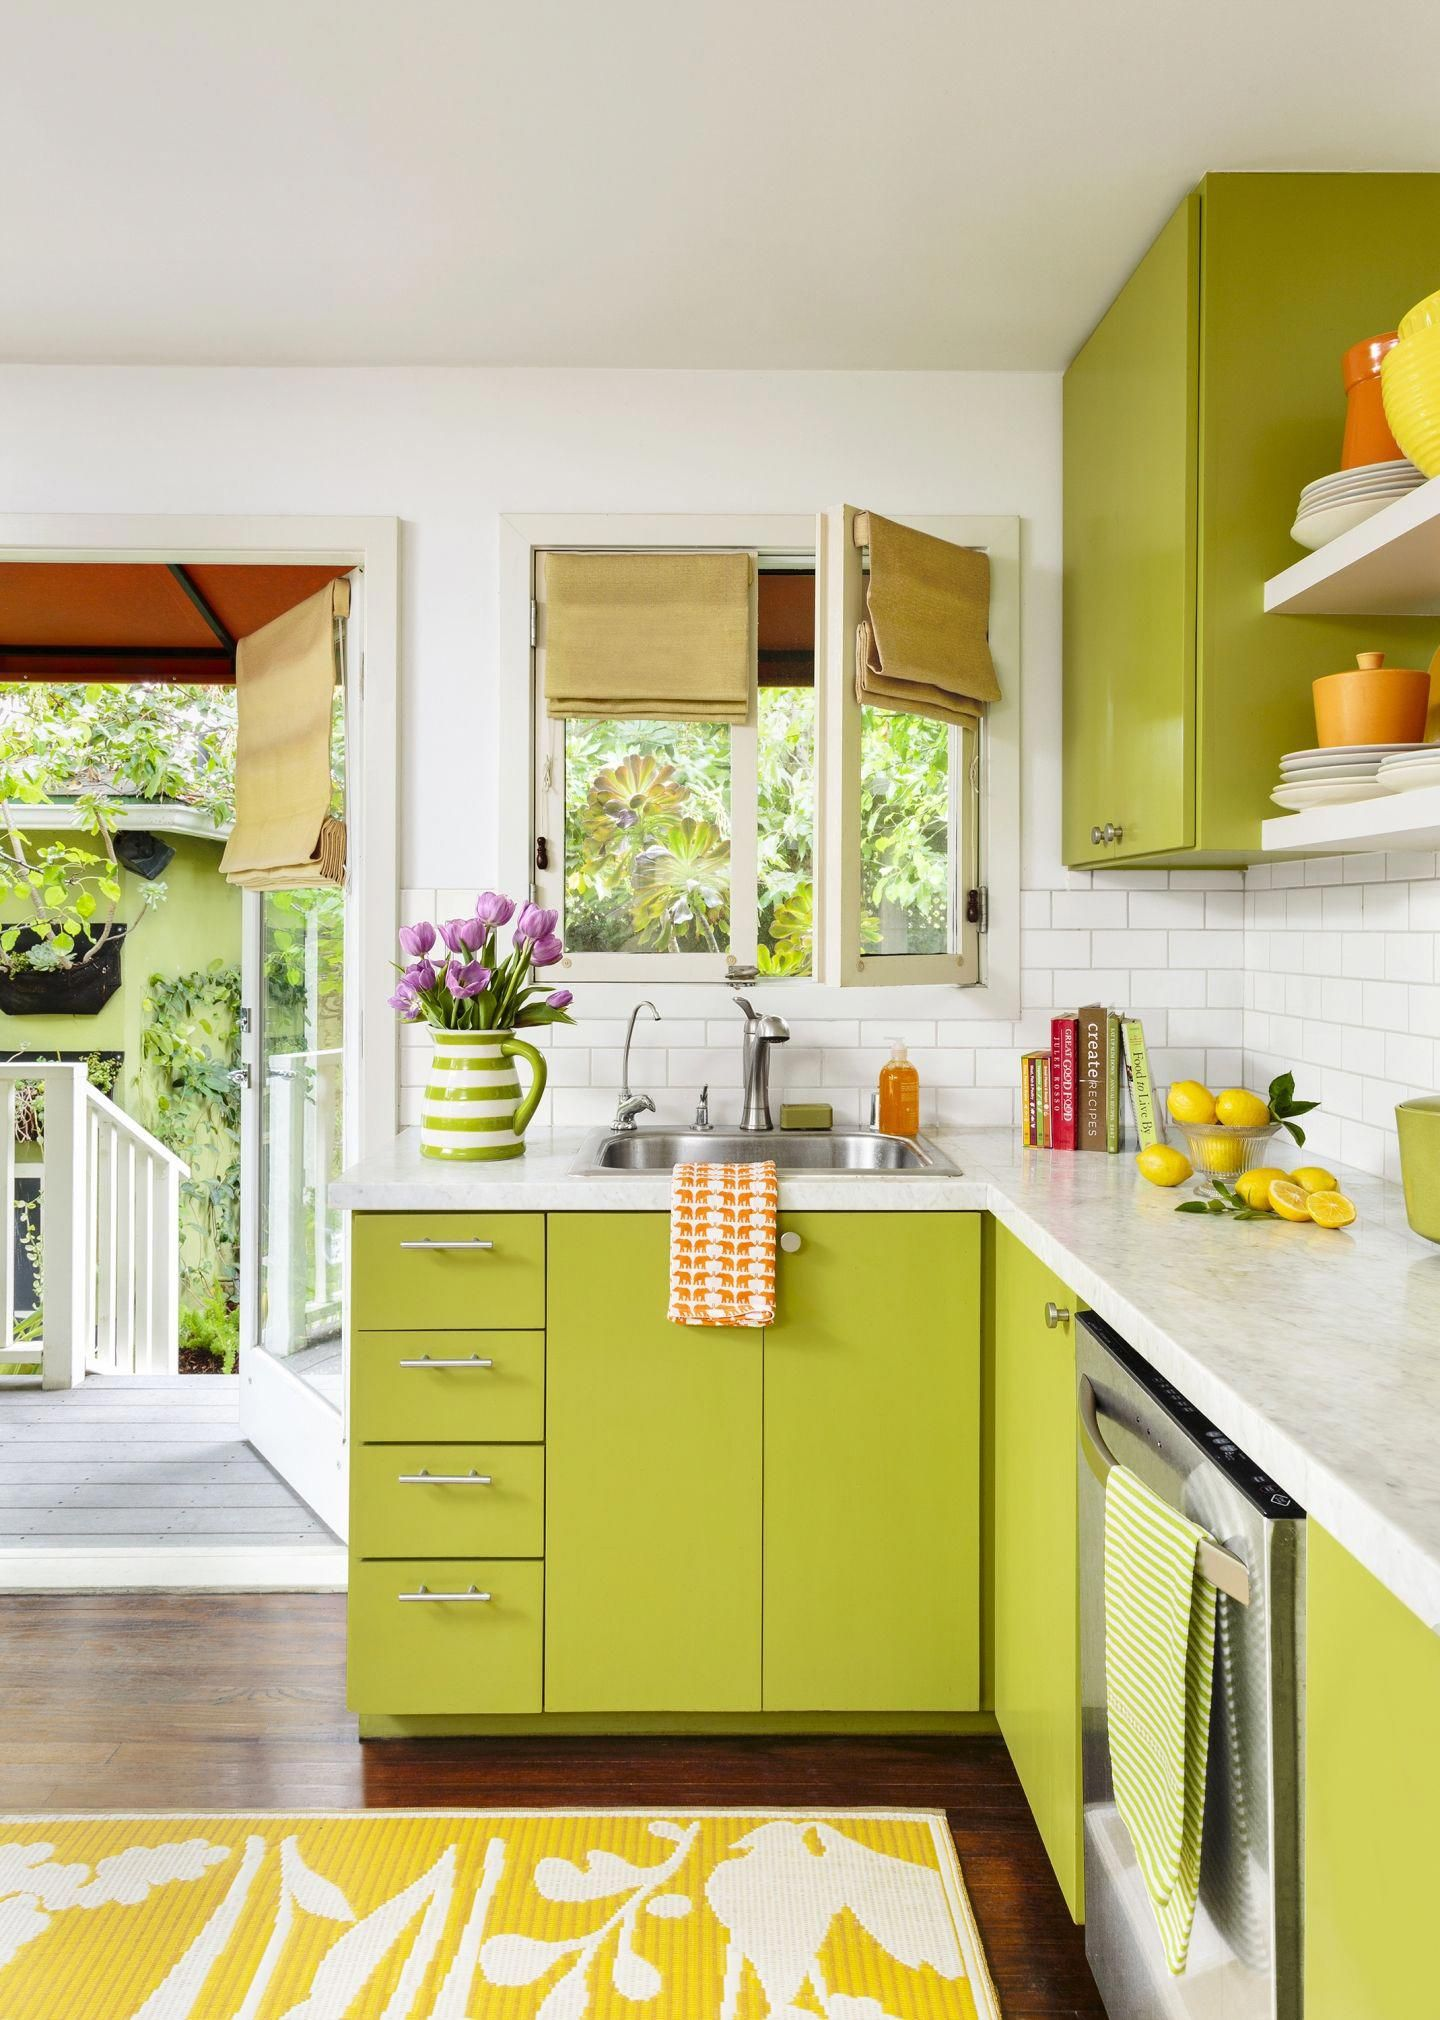 Lime Green Cabinets And Backyard Windows Bring The Nearby Garden Inside Creating A Kitchen Cabinets Color Combination Green Kitchen Decor New Kitchen Cabinets